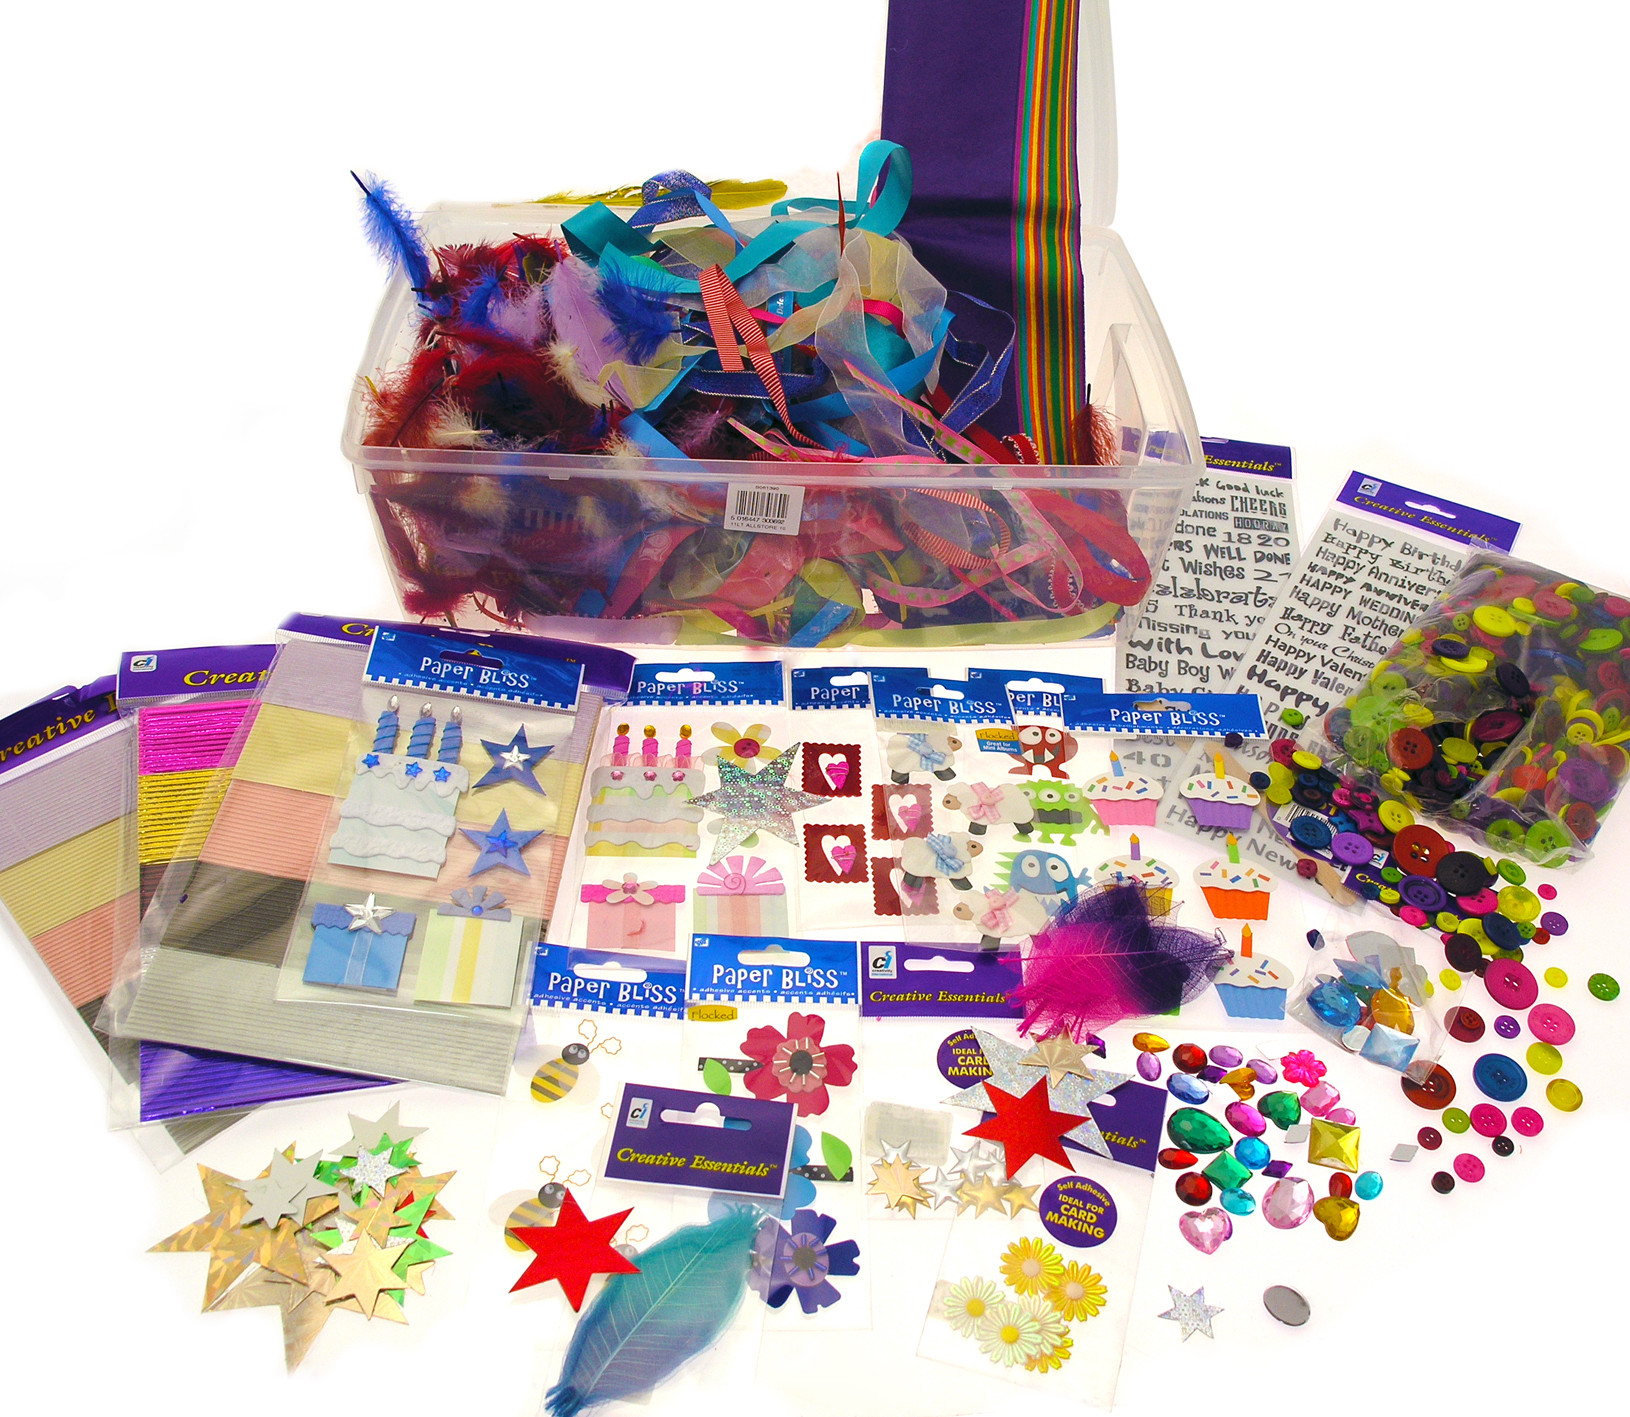 Crafts Kits For Kids  Bumper craft kits ideal for a crafty kids party